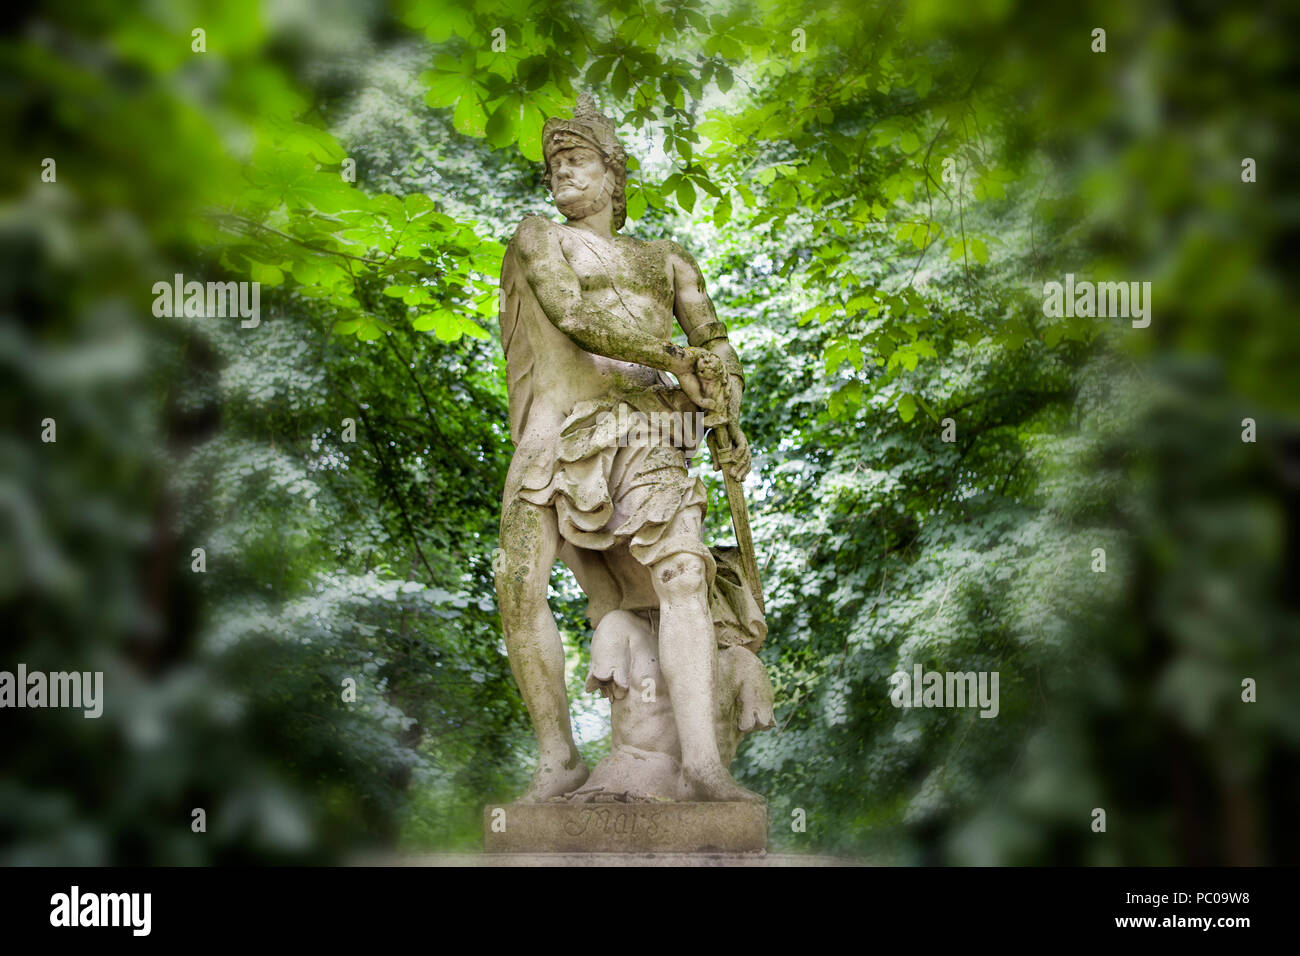 Sculpture of Mars at Nordkirchen Moated Palace, Germany - Stock Image